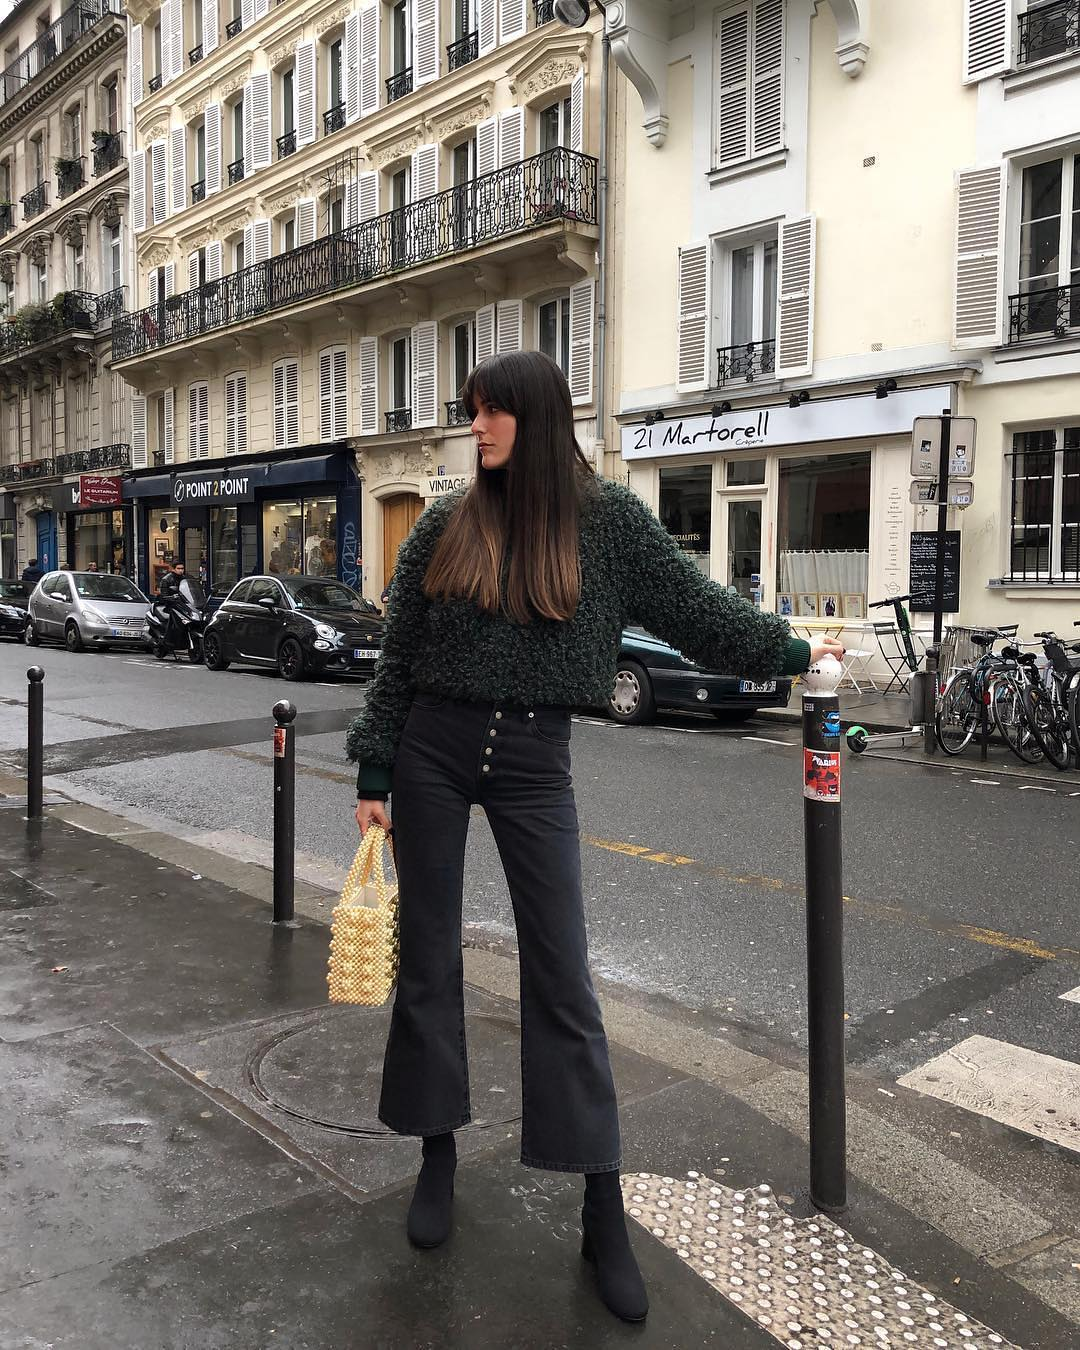 Mohair sweater and flared crop jeans for Parisian Chic Walk 2021